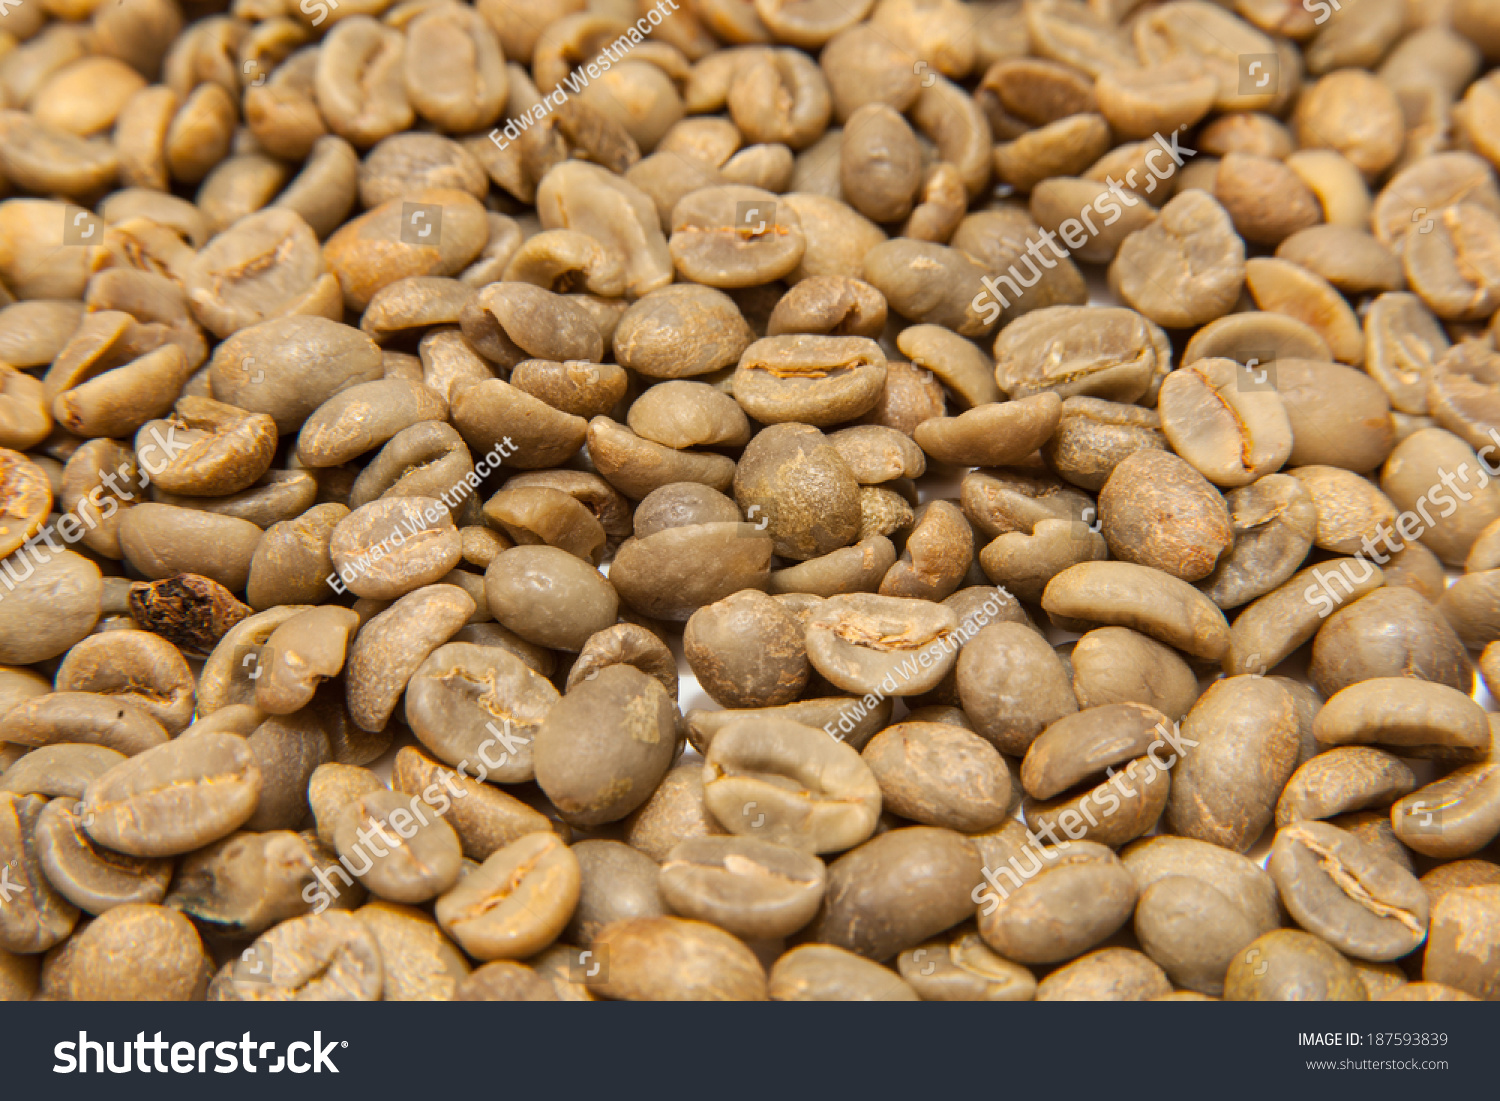 Unroasted Organic Arabica Coffee Beans Green Unroasted Arabica Coffee Beans Stock Photo 187593839